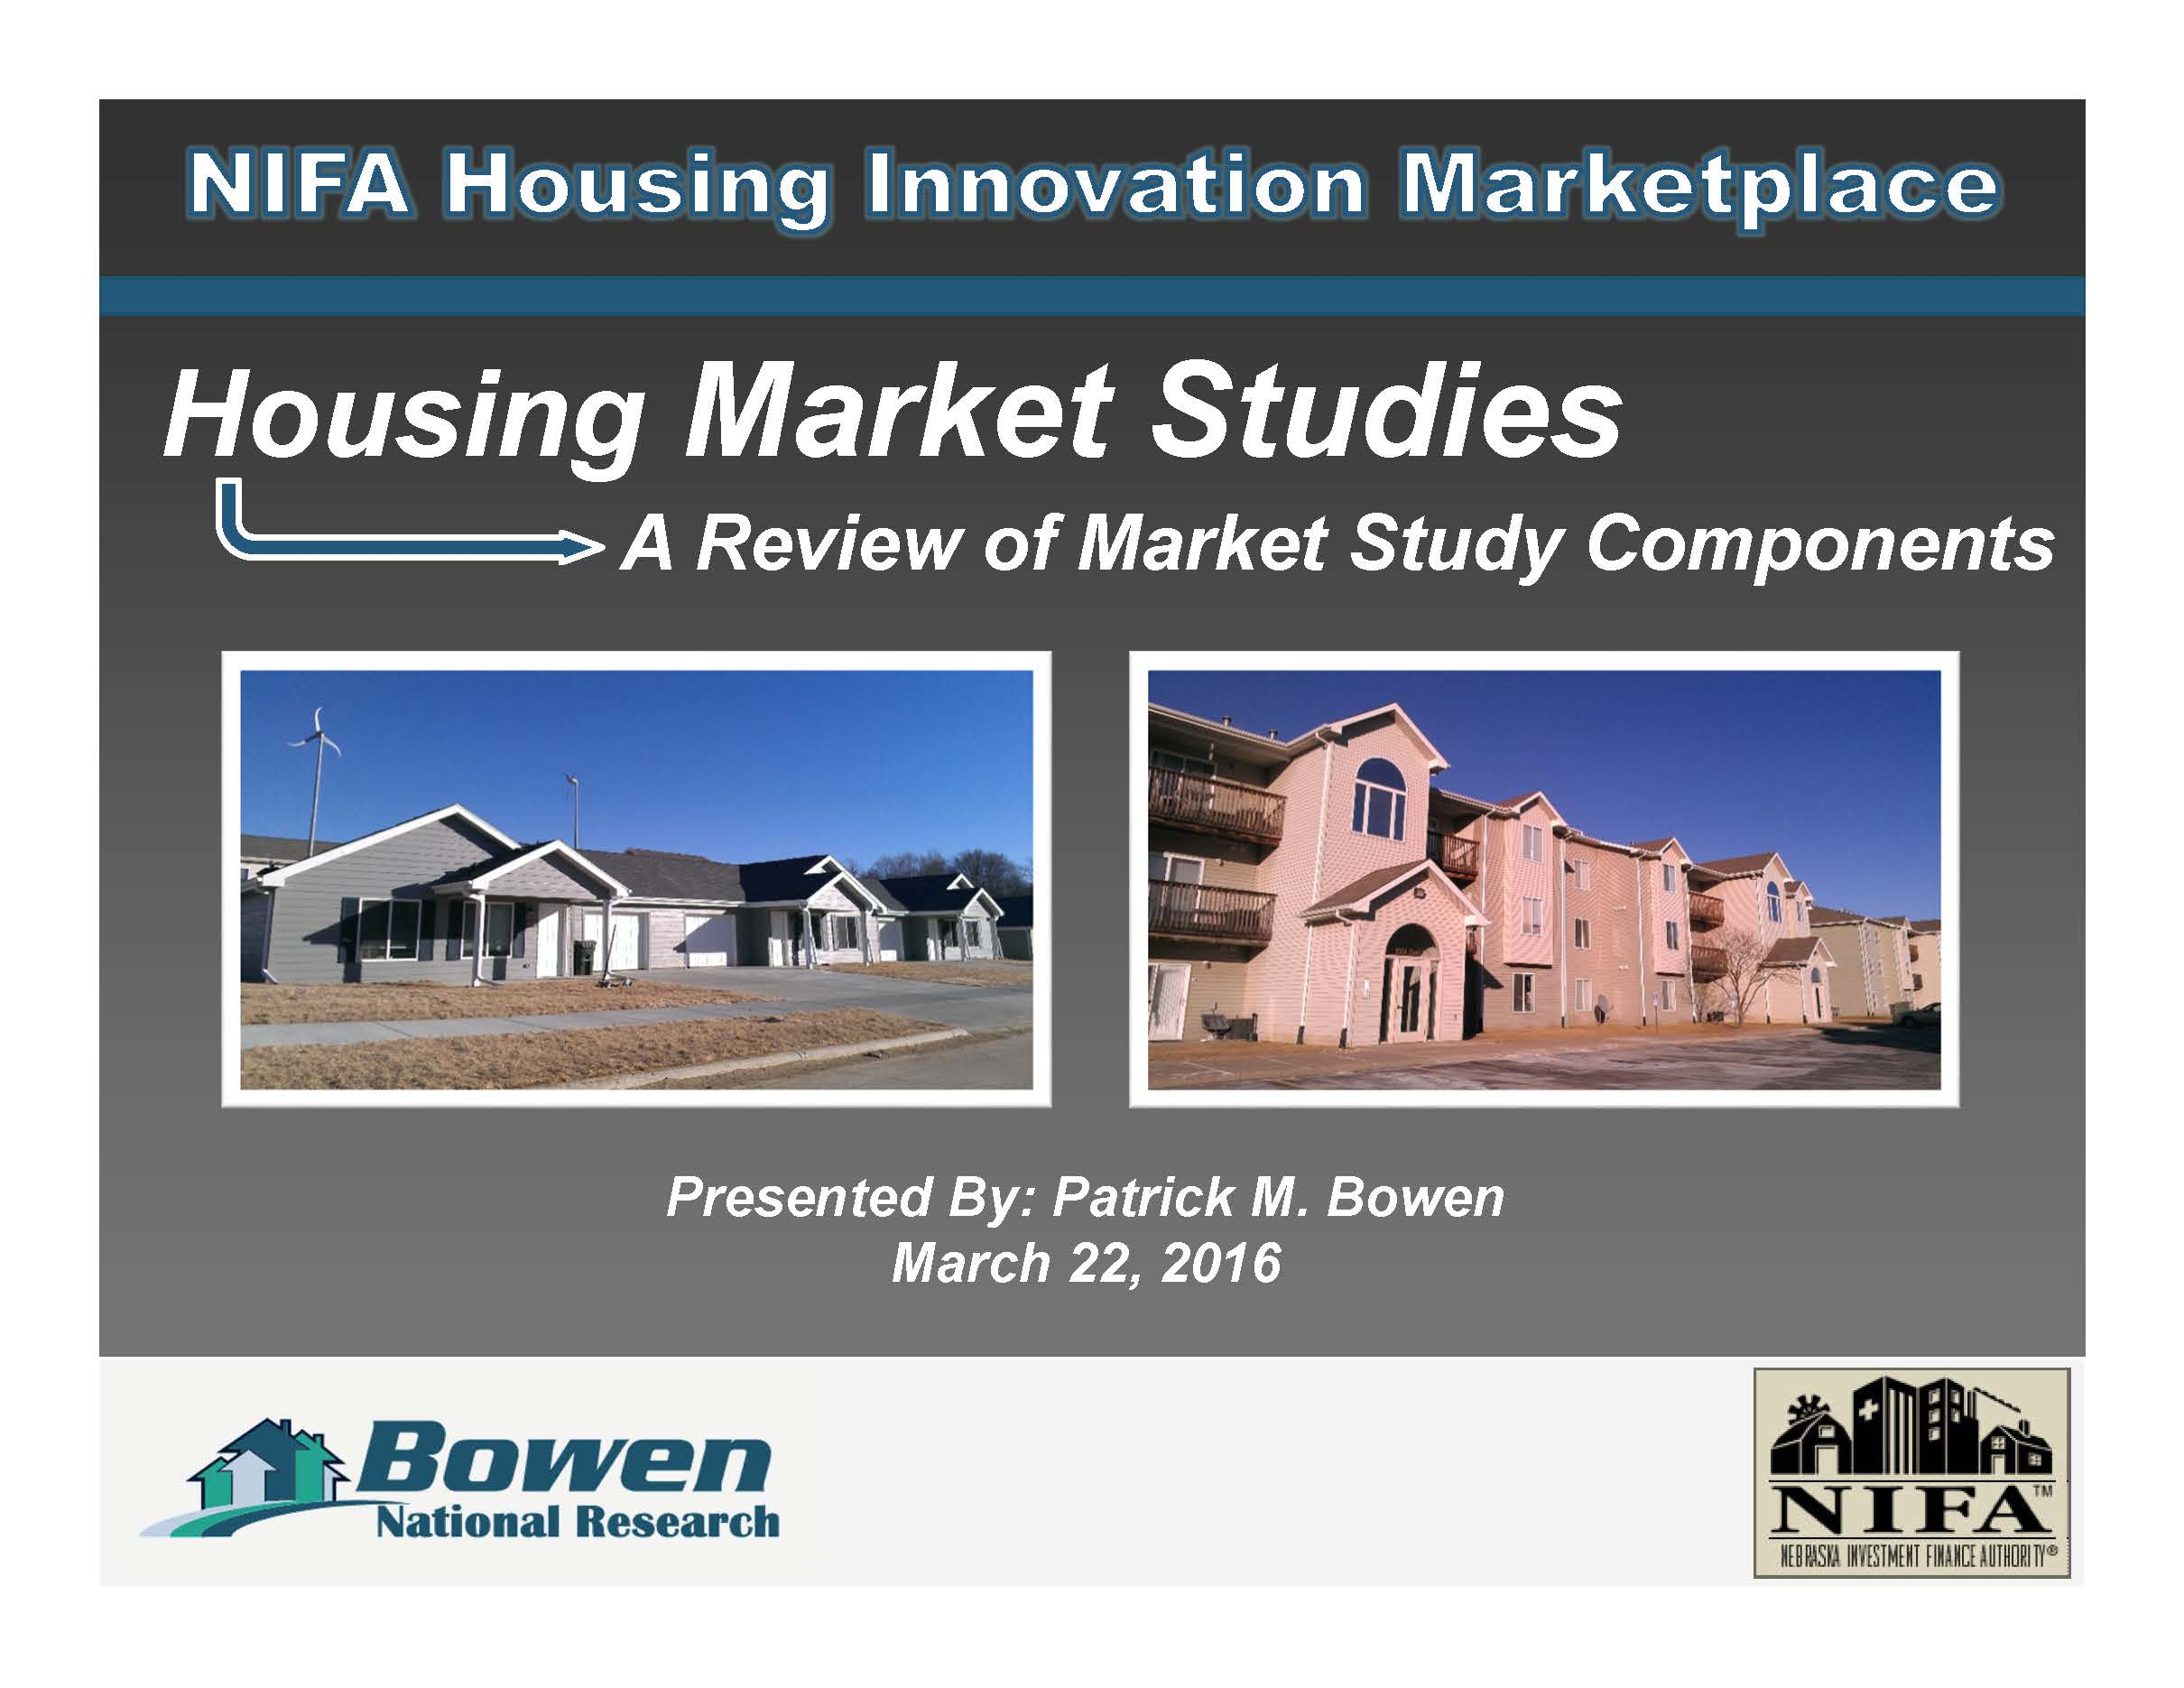 NIFA Housing Innovation Marketplace